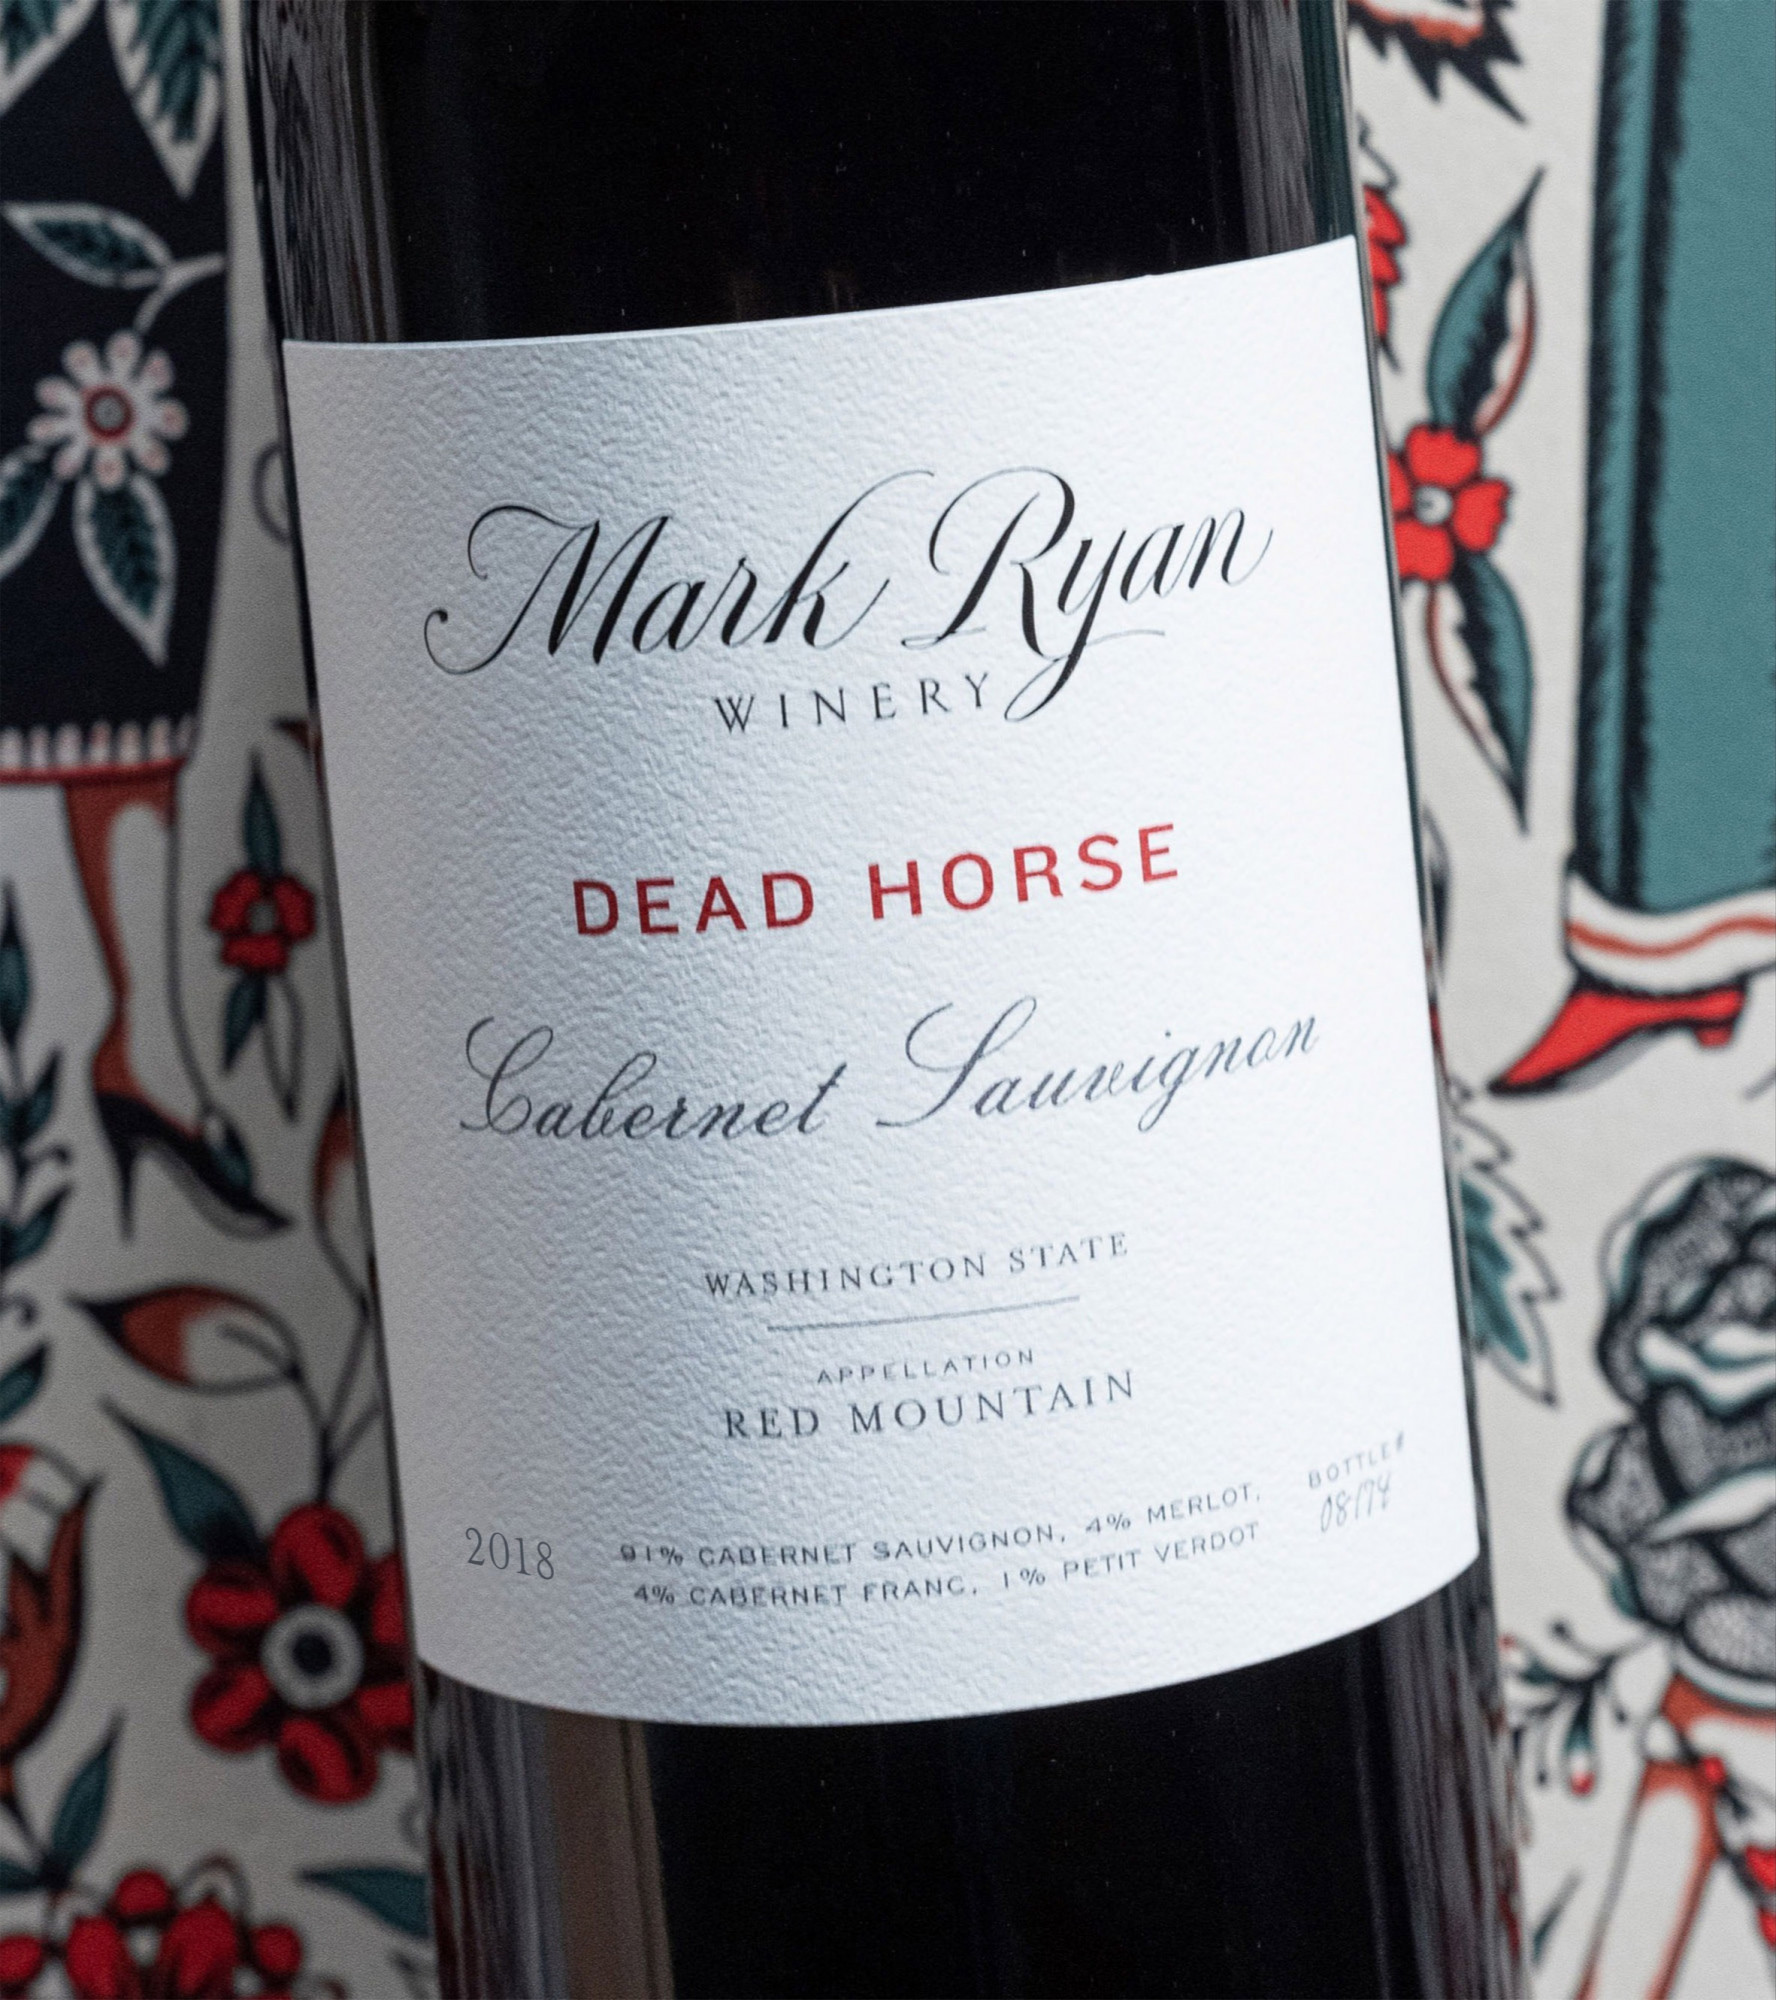 Mark Ryan Winery Dead Horse